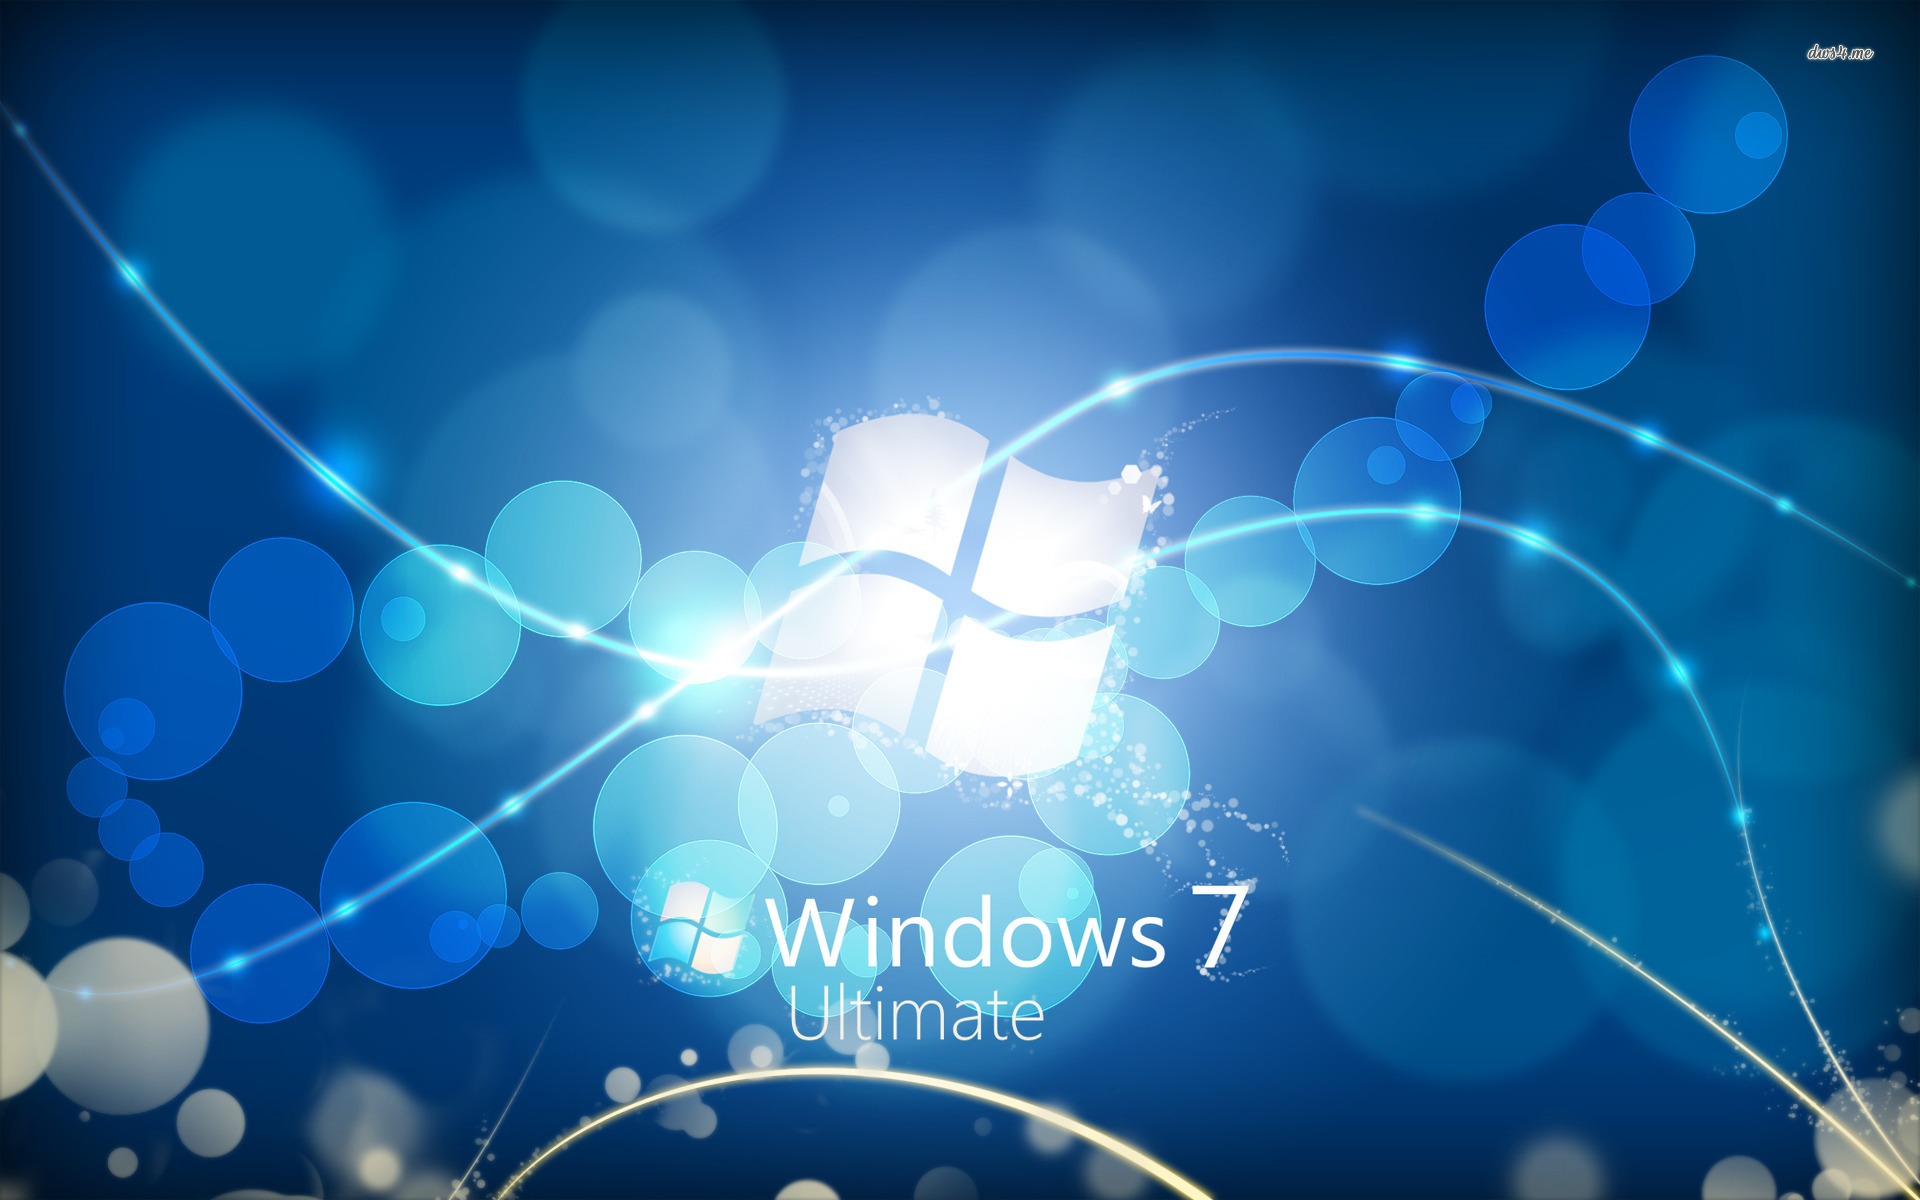 Windows 7 Ultimate HD Wallpaper   HD Images New 1920x1200